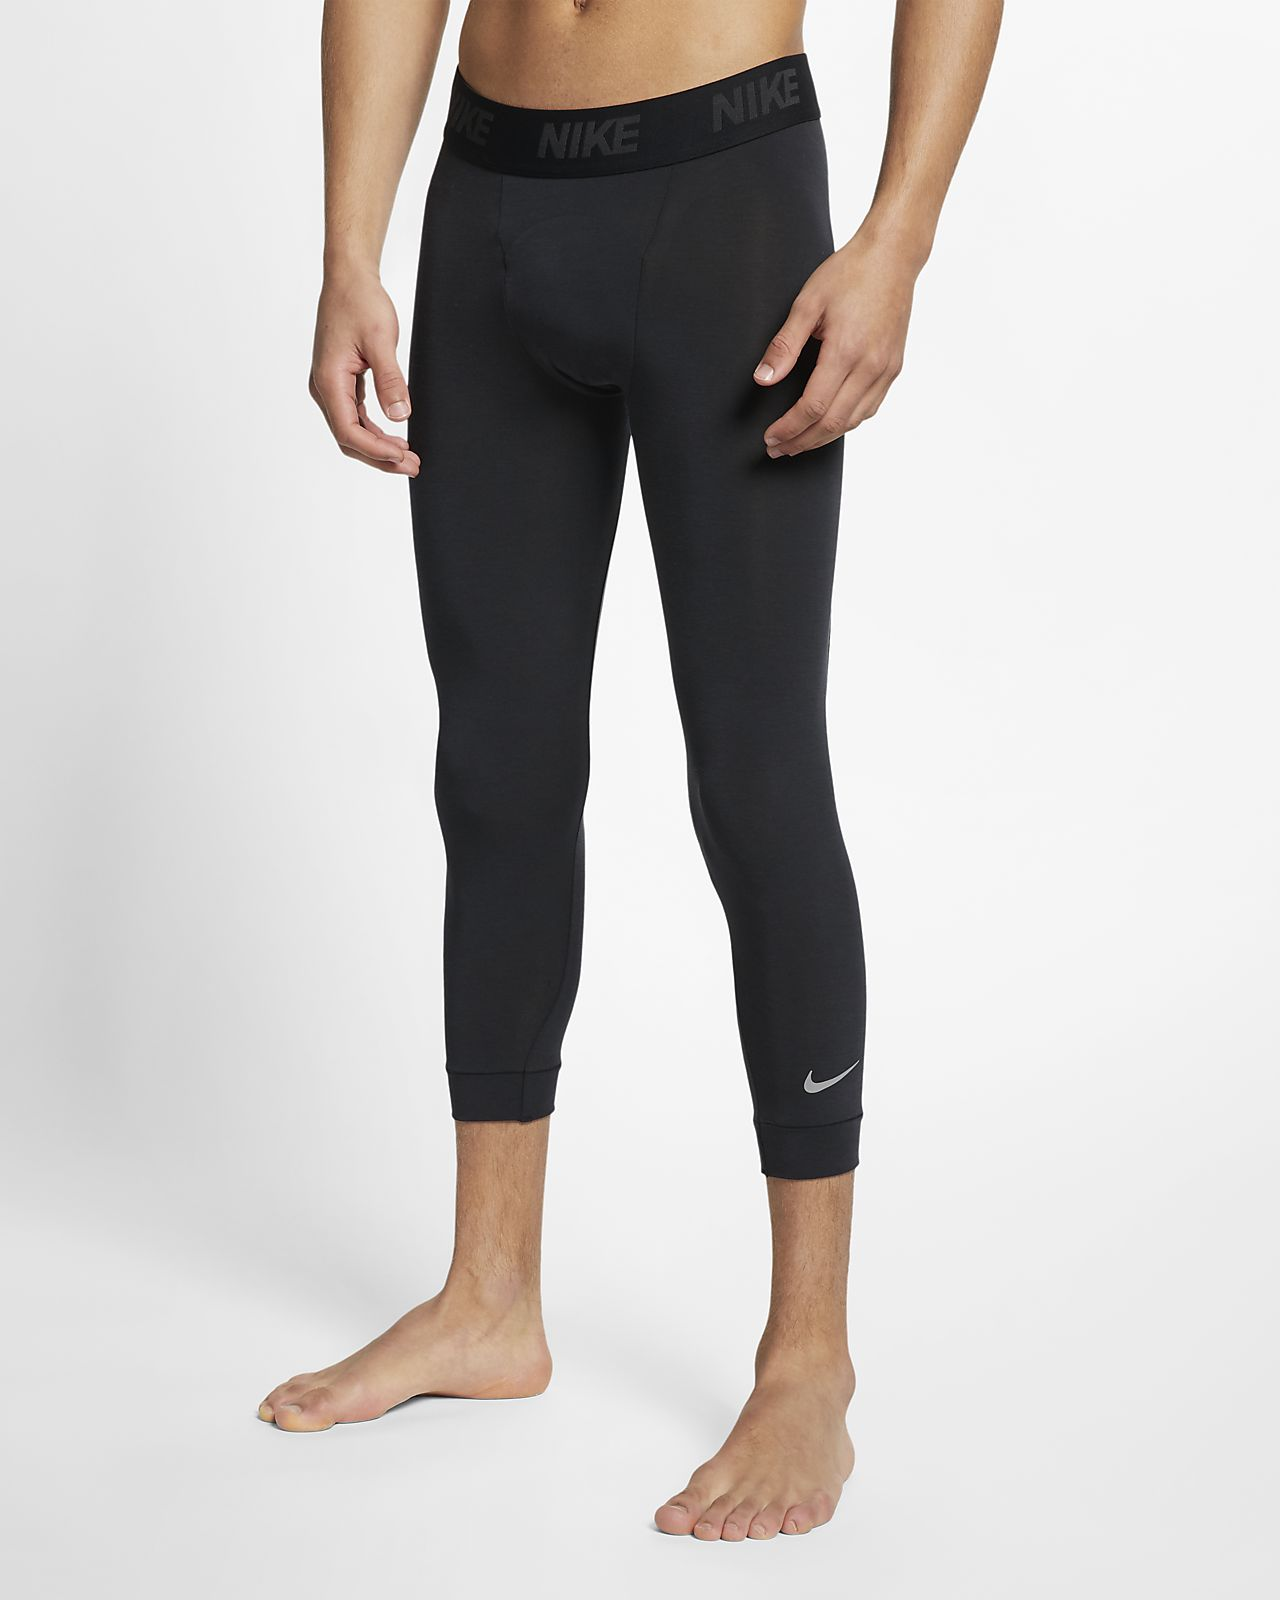 Yoga Dri De Homme 34 Collant Nike Pour Training Fit 8wnPXN0Ok